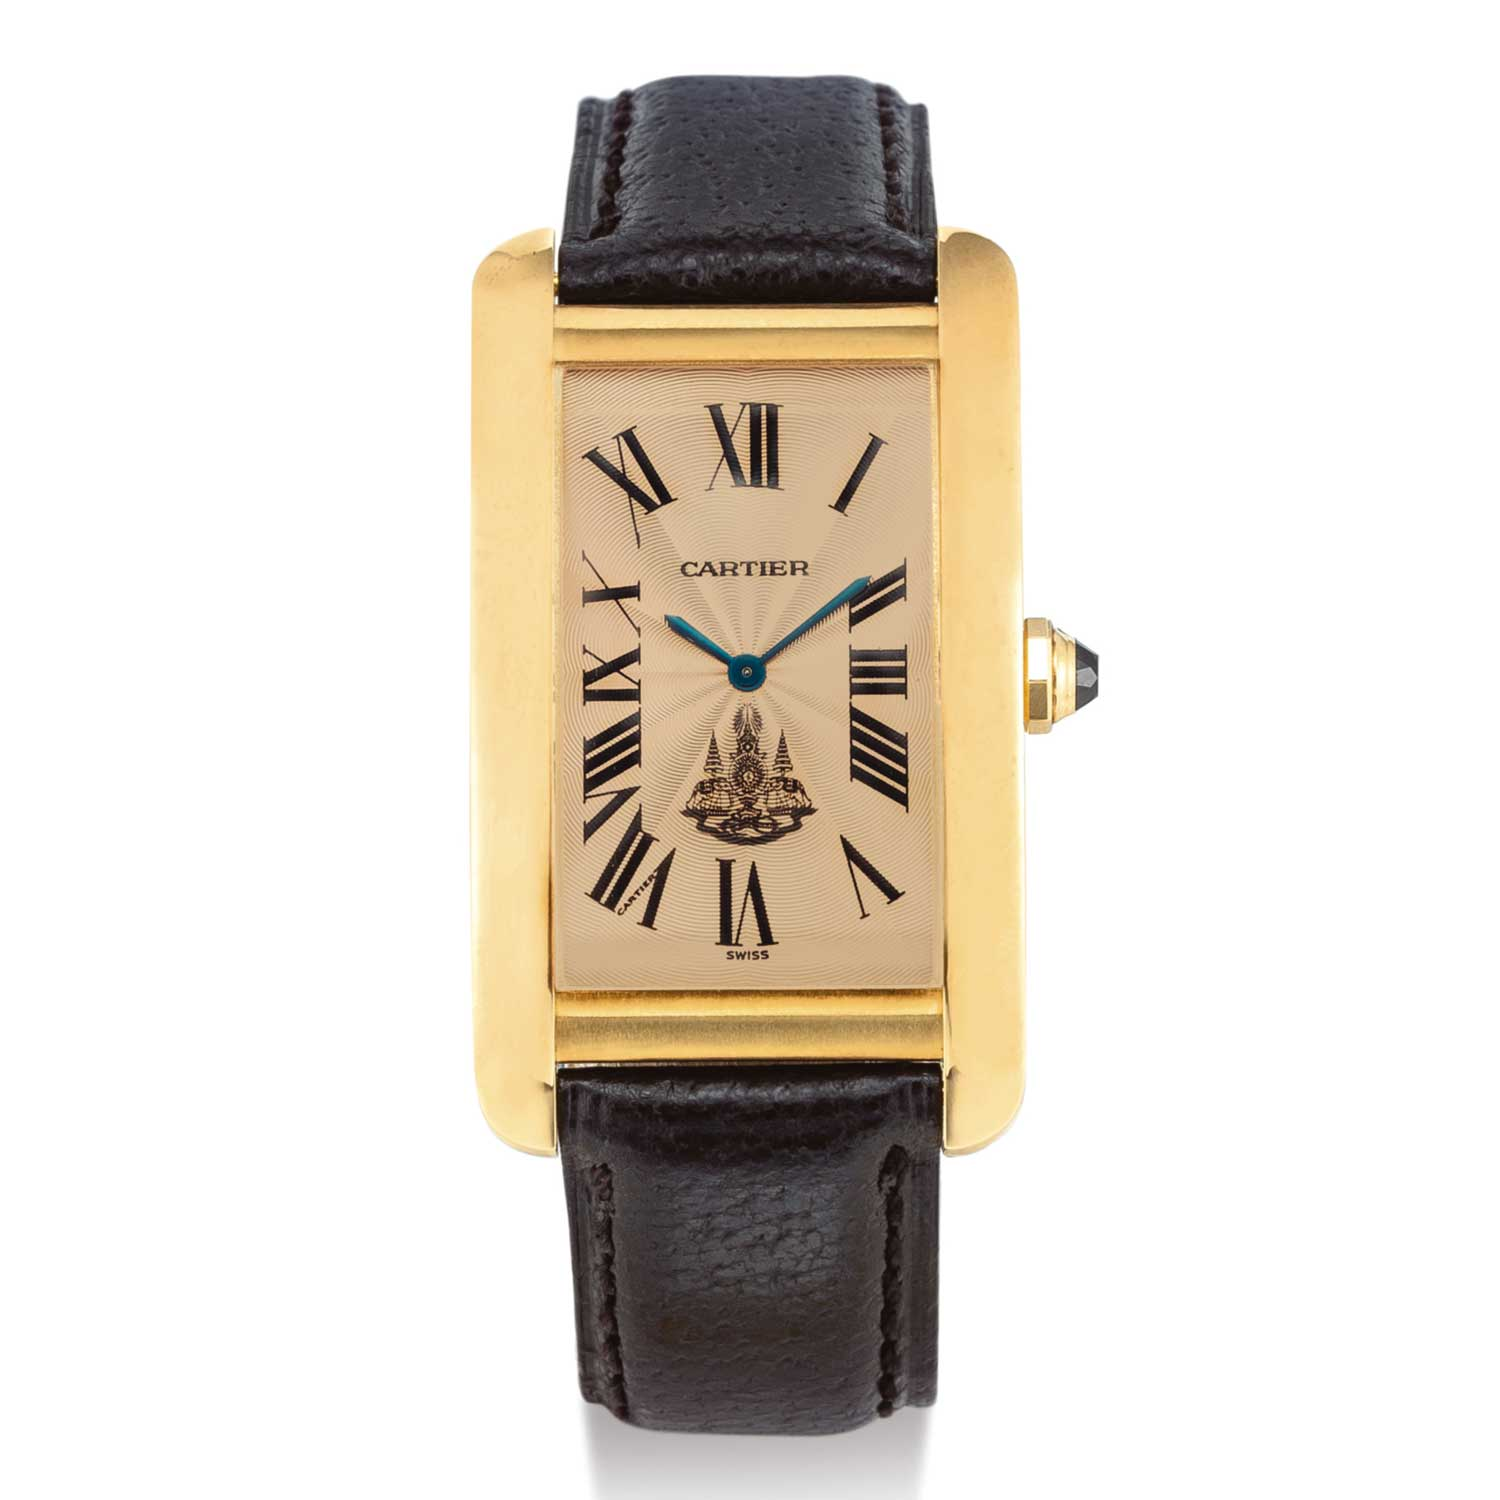 Cartier Tank Americaine, Reference 1735 1 A Yellow Gold Wristwatch With Salmon Dial, Made For King Of Siam, Circa 1990